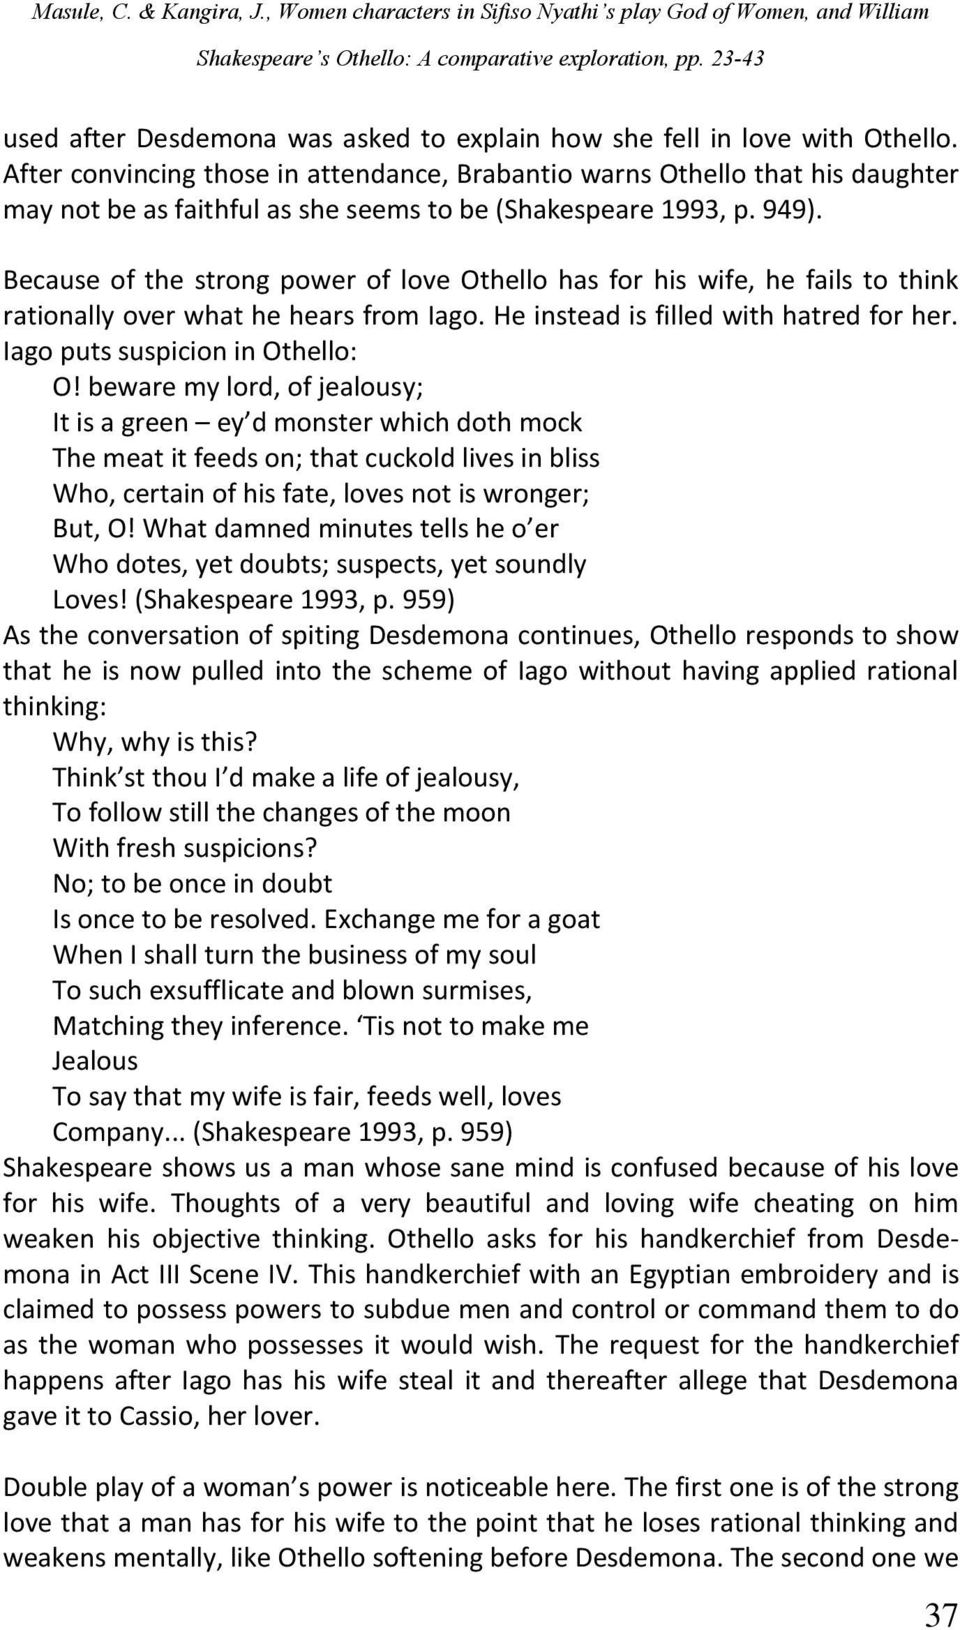 aspects of love in othello quotes essay